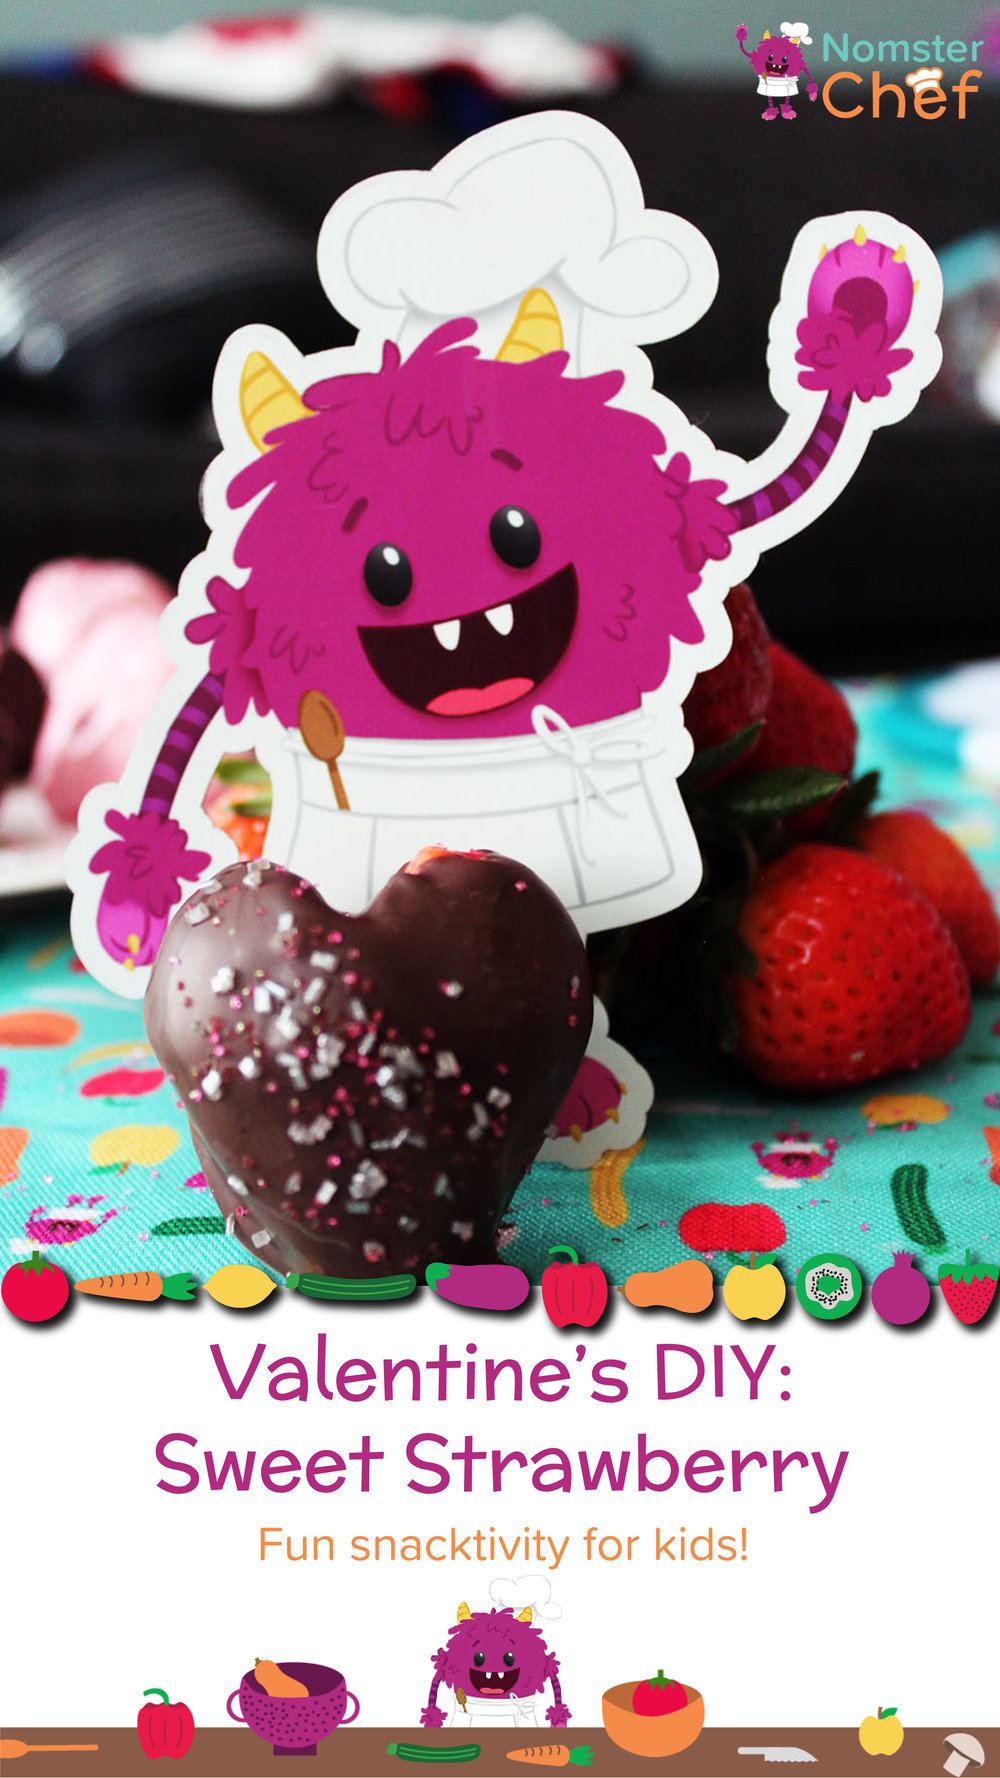 Valentines-Strawberry-Recipe-01.jpg